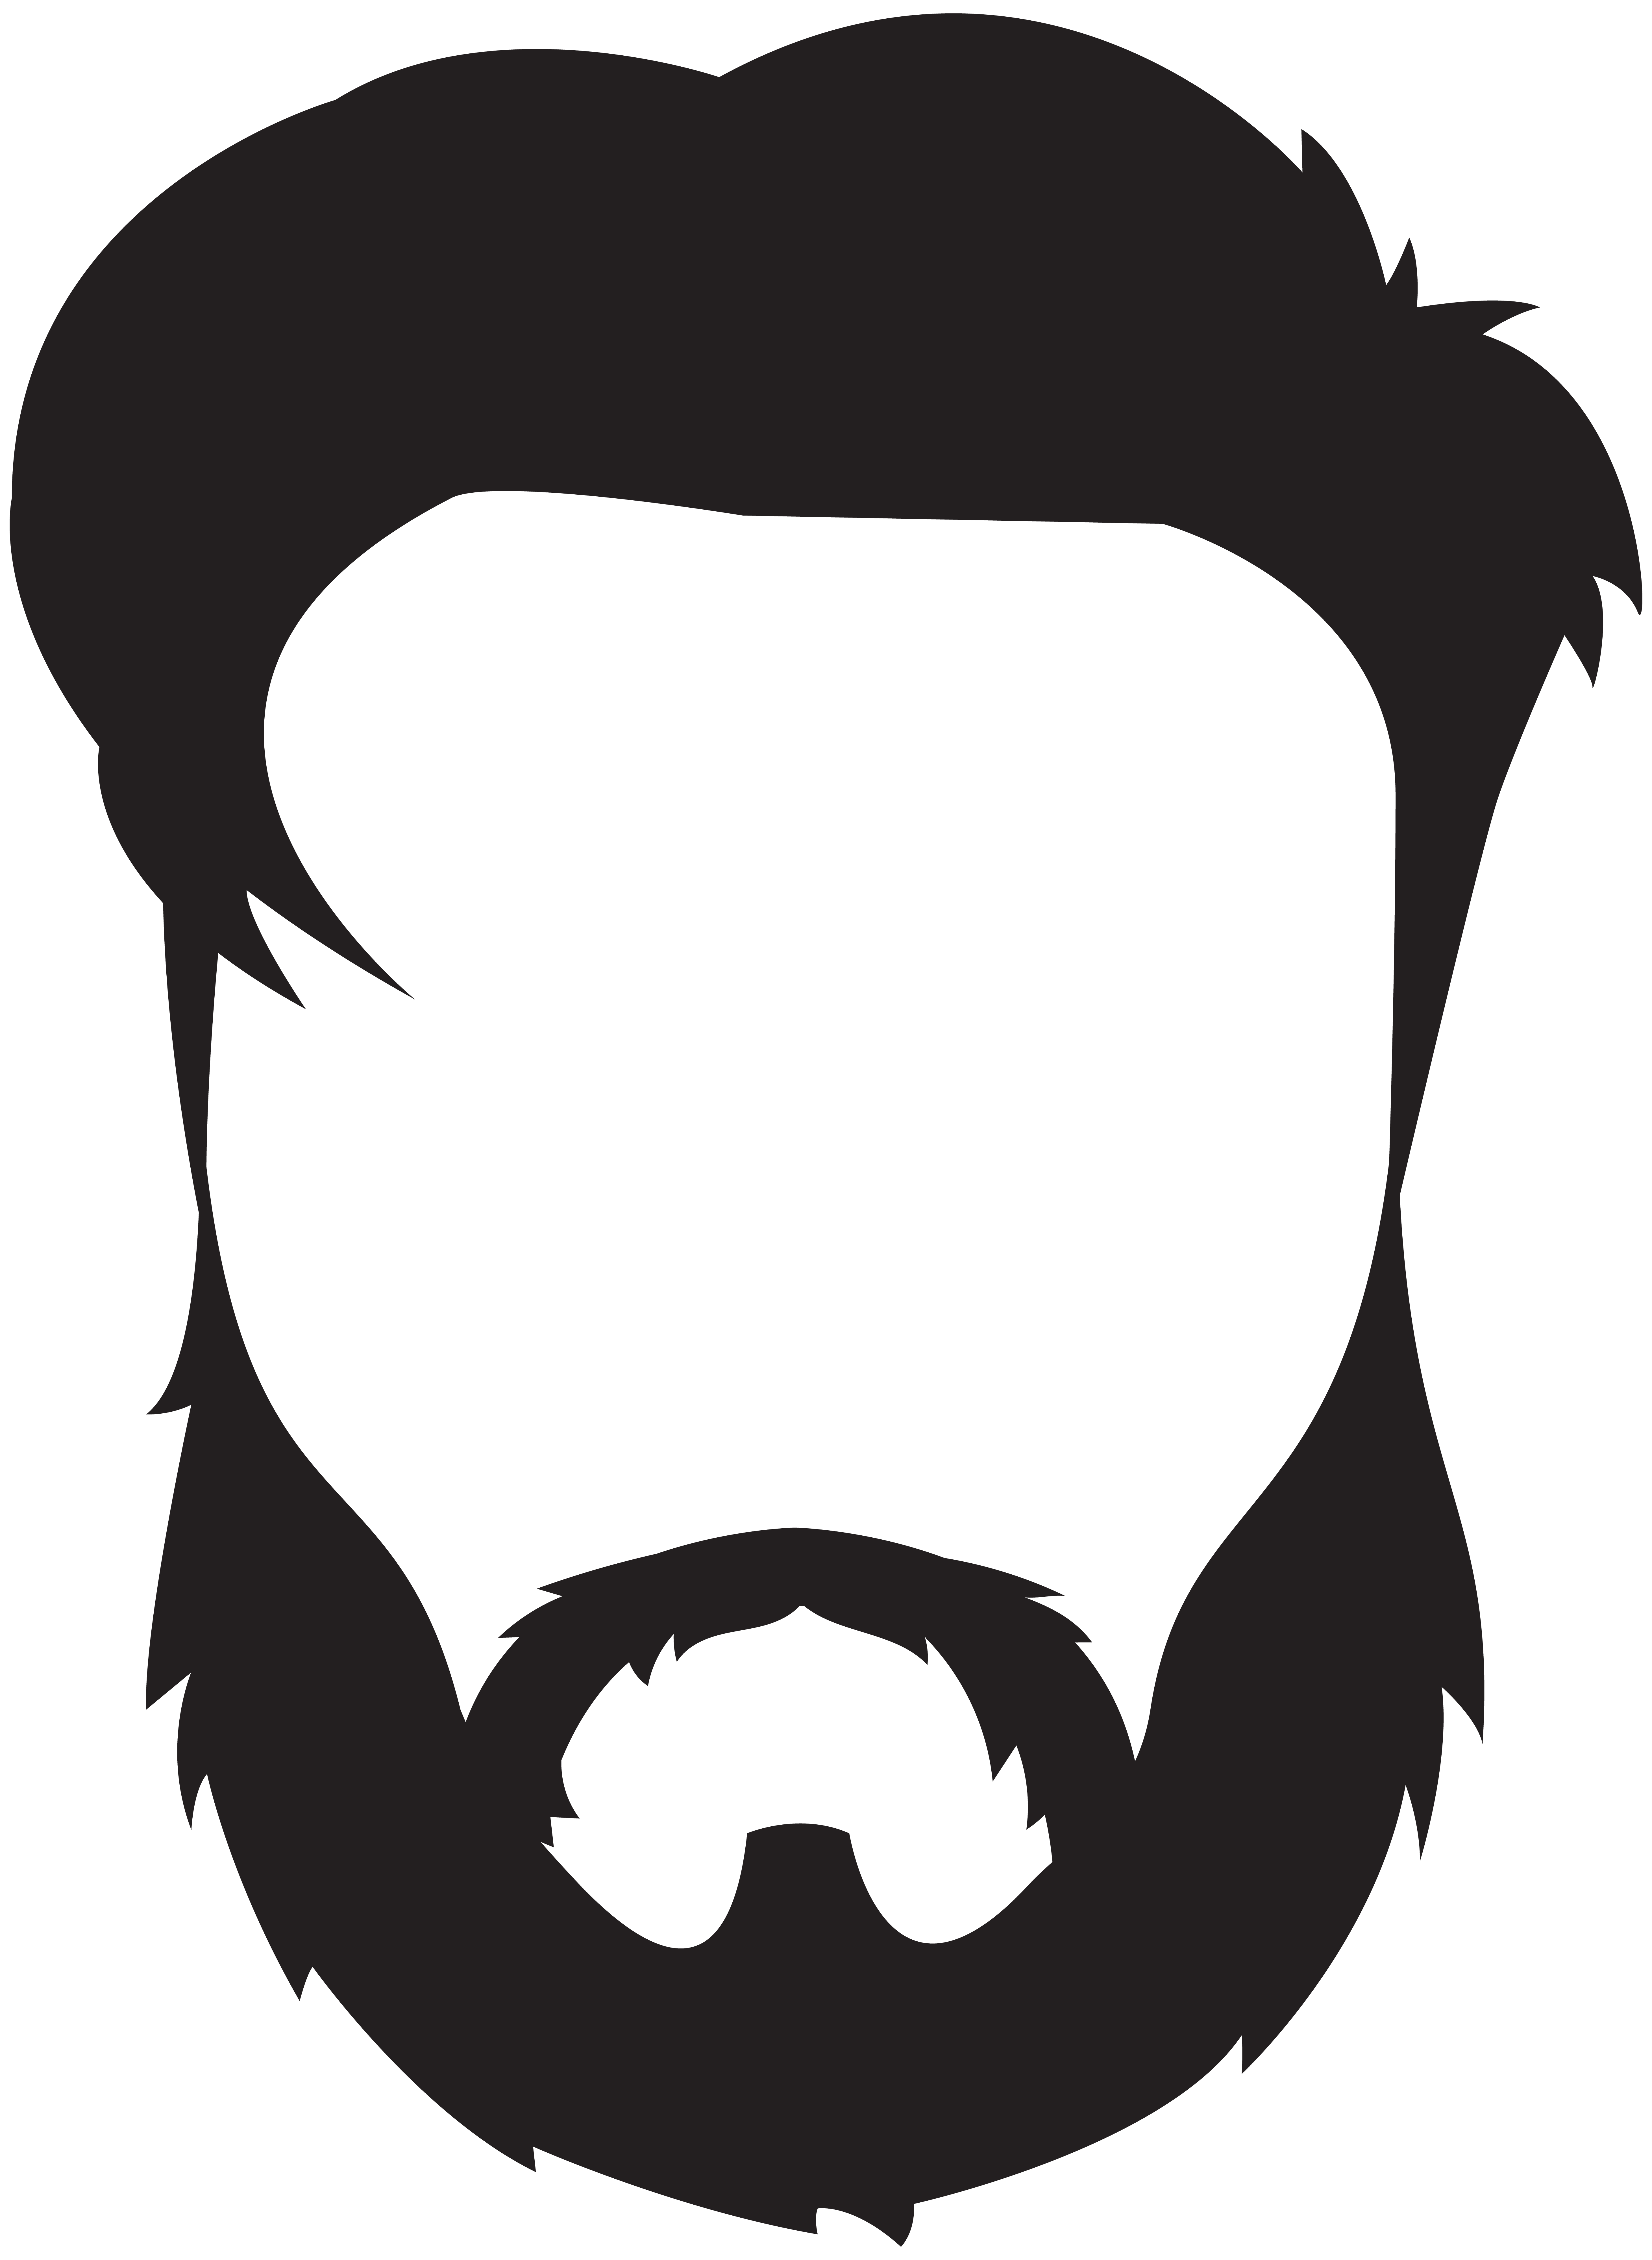 svg royalty free library Beard clipart black and white. Royalty free clip art